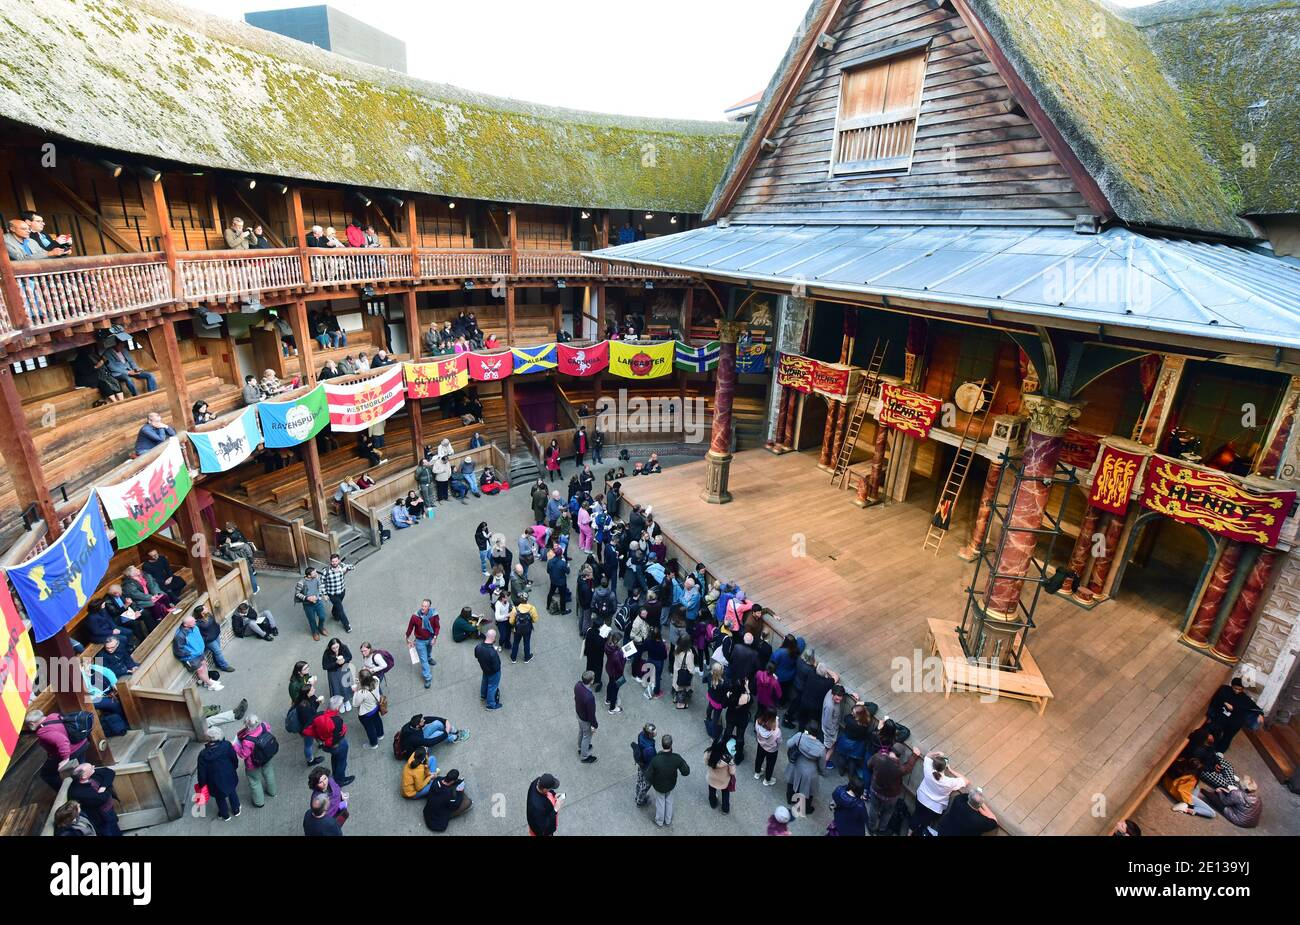 London, UK. 07th Sep, 2019. The entrance to Shakespeare's Globe Theatre. The performances take place in the open air. Credit: Waltraud Grubitzsch/dpa-Zentralbild/ZB/dpa/Alamy Live News Stock Photo